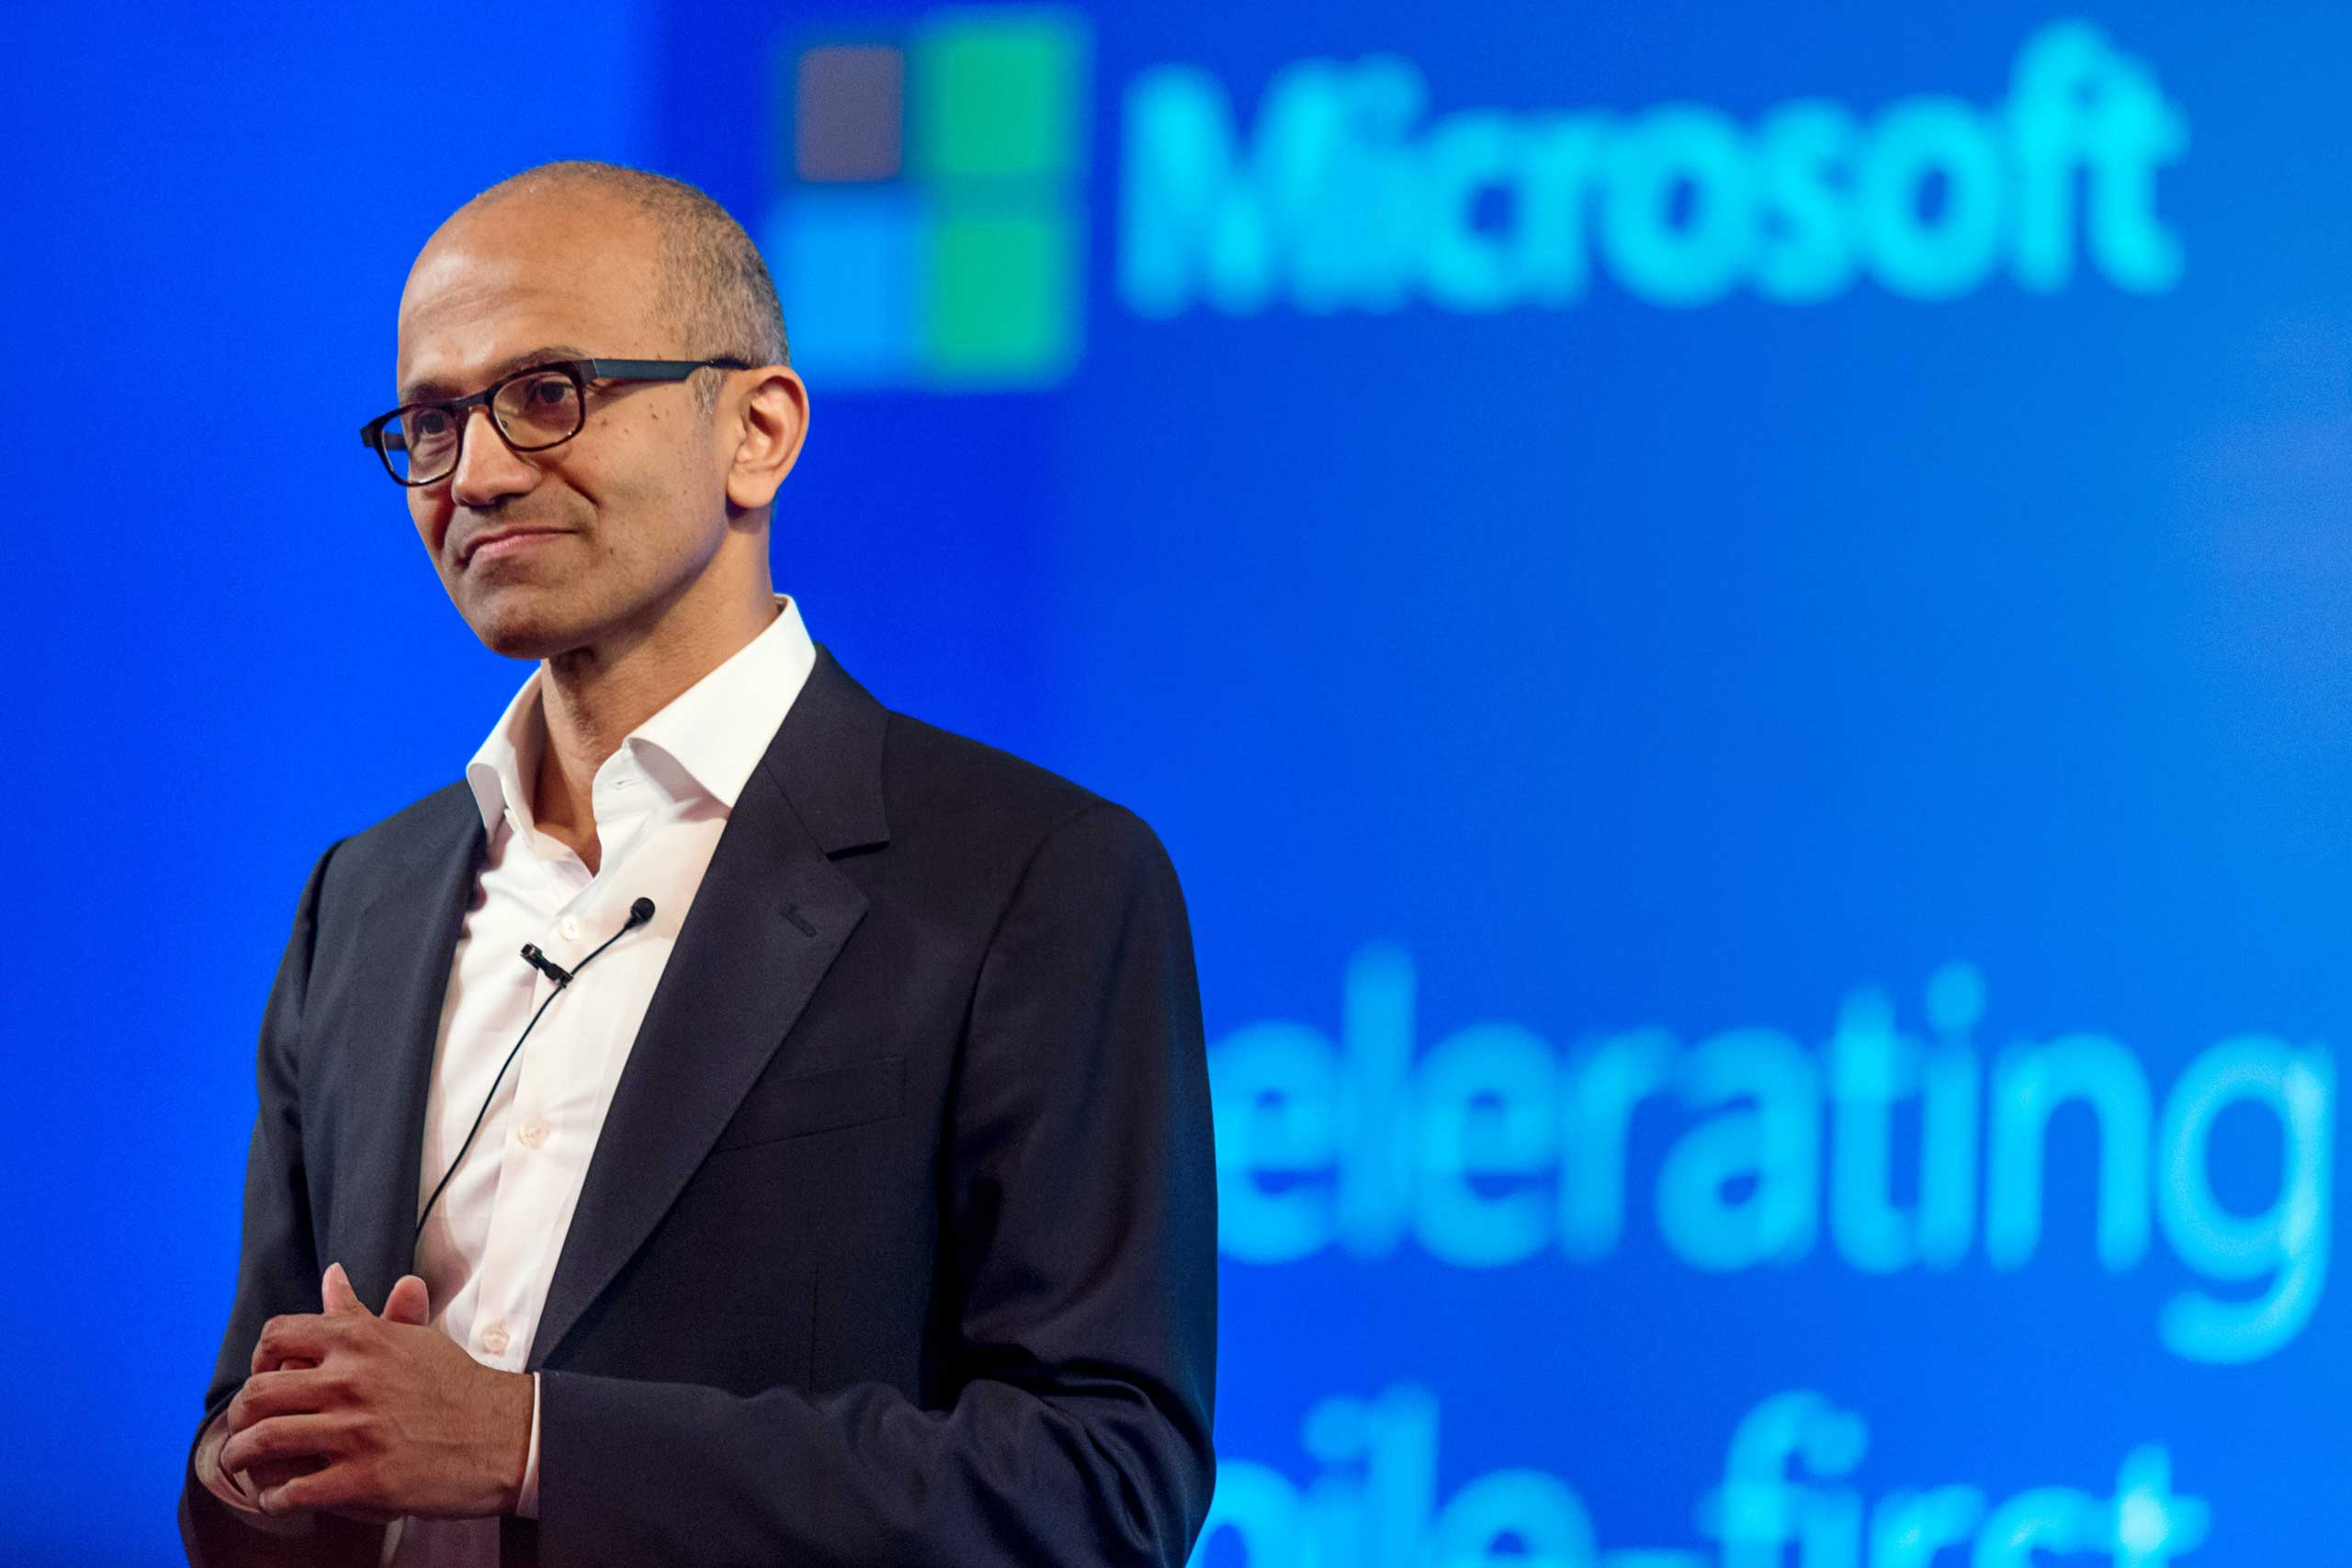 Satya Nadella, chief executive officer of Microsoft Corp., speaks during a news conference in New Delhi, India, on Sept. 30, 2014.